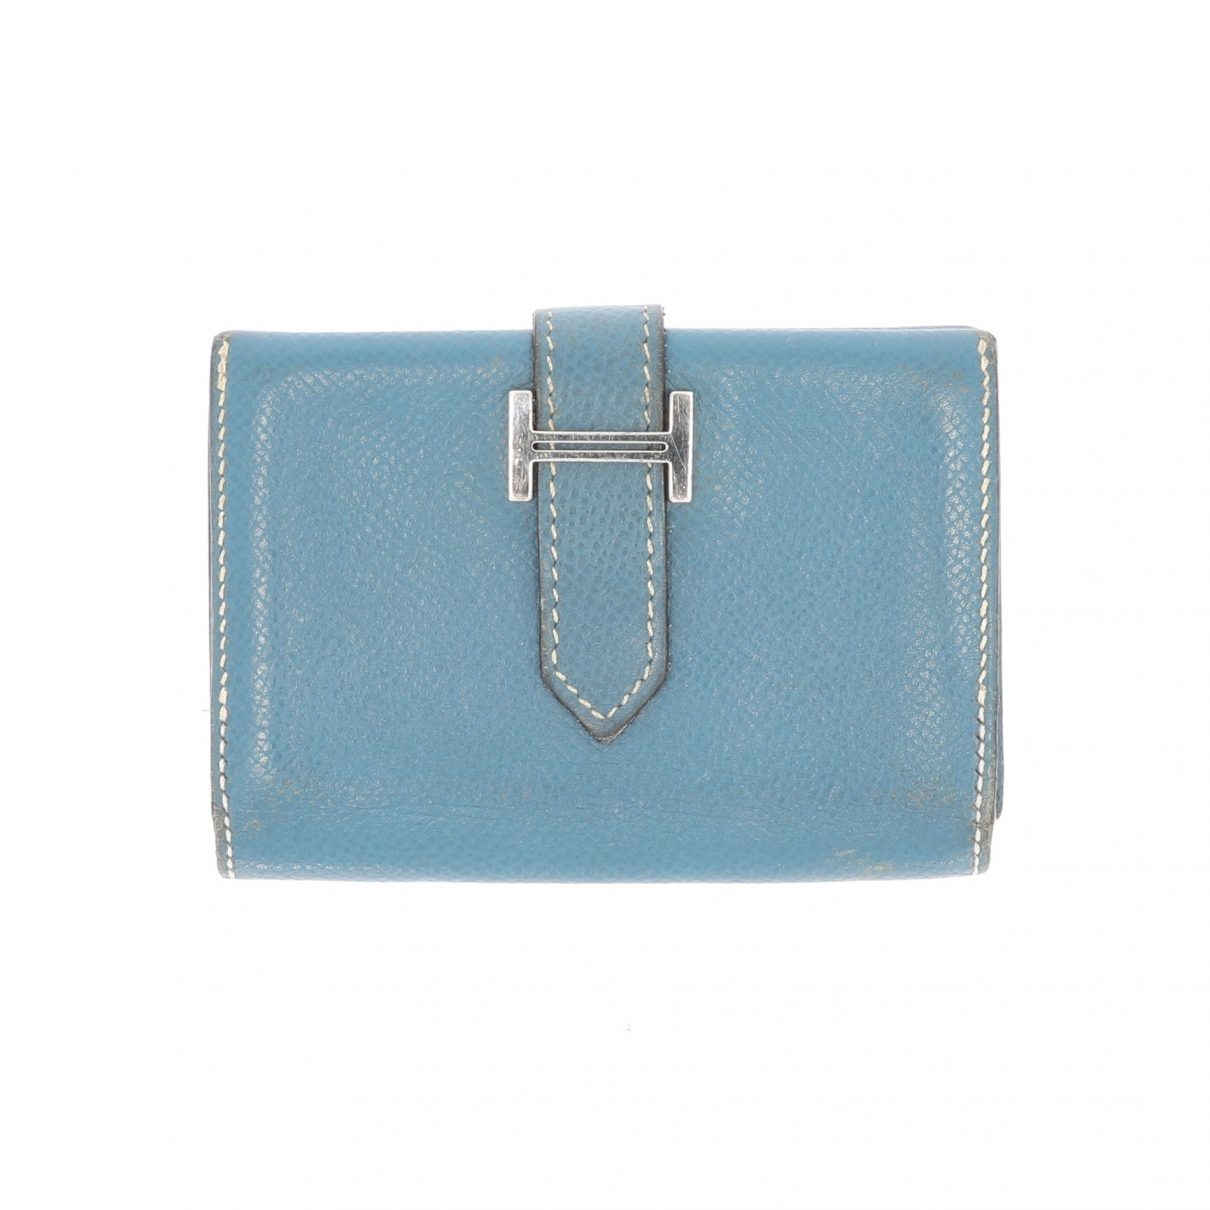 Hermès Béarn Blue Leather Purses, wallet & cases for Women \N